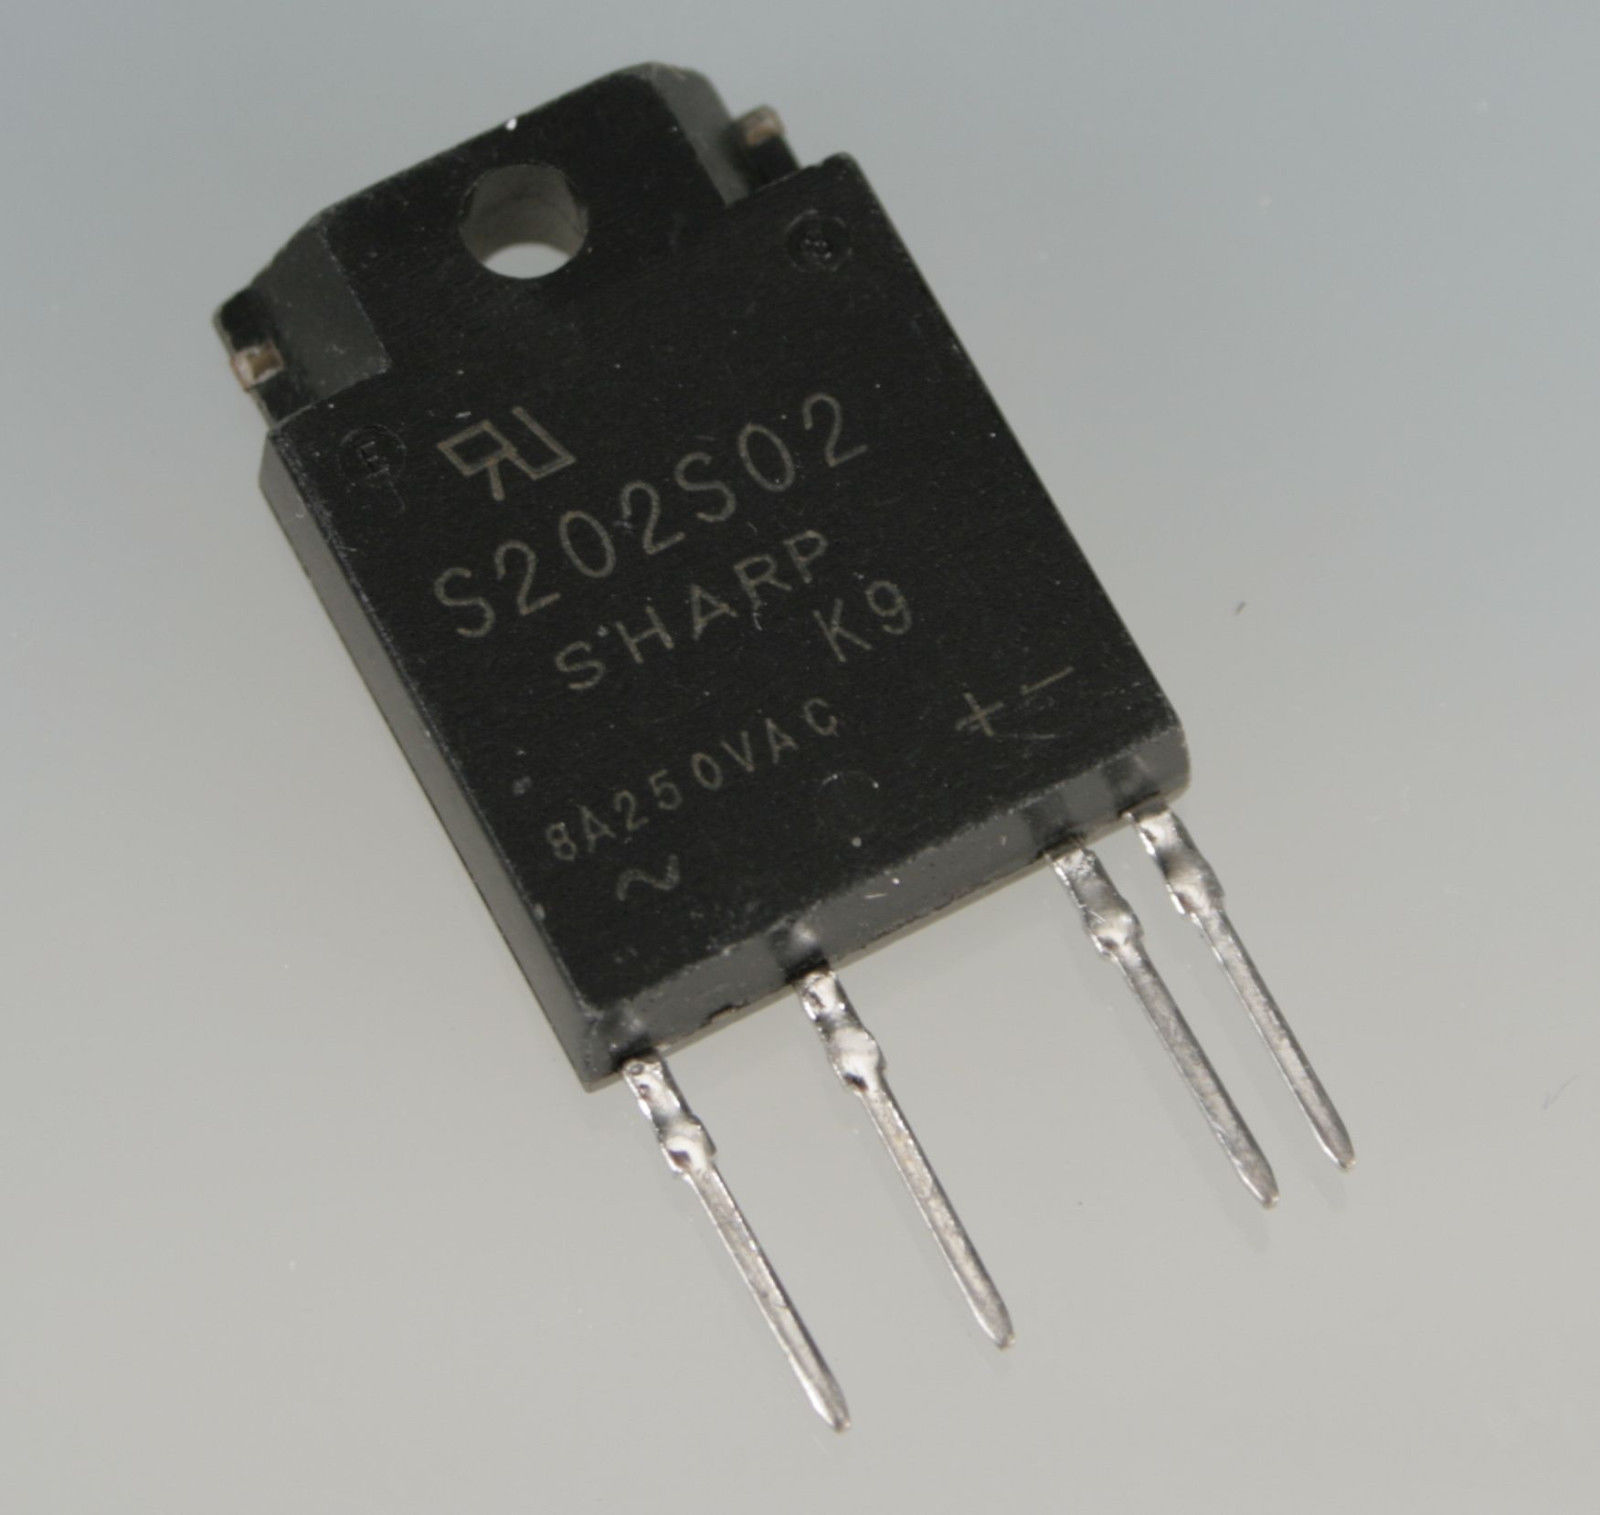 S202S02 solid state relay 8A RMS